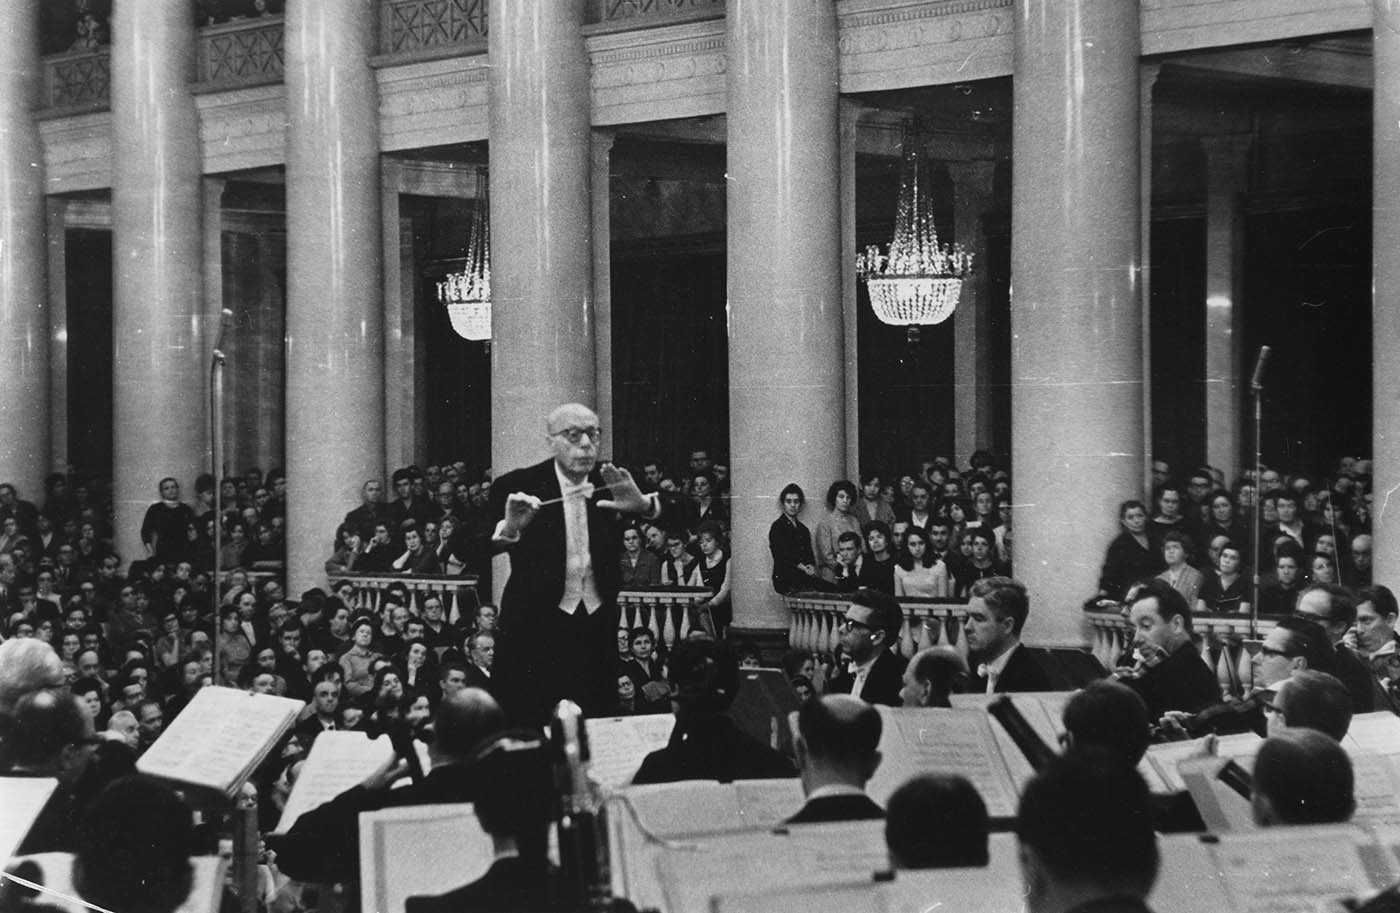 Szell is conducting the Orchestra. A large, attentive audience is seated behind them. Prominent chandeliers hang above the audience.